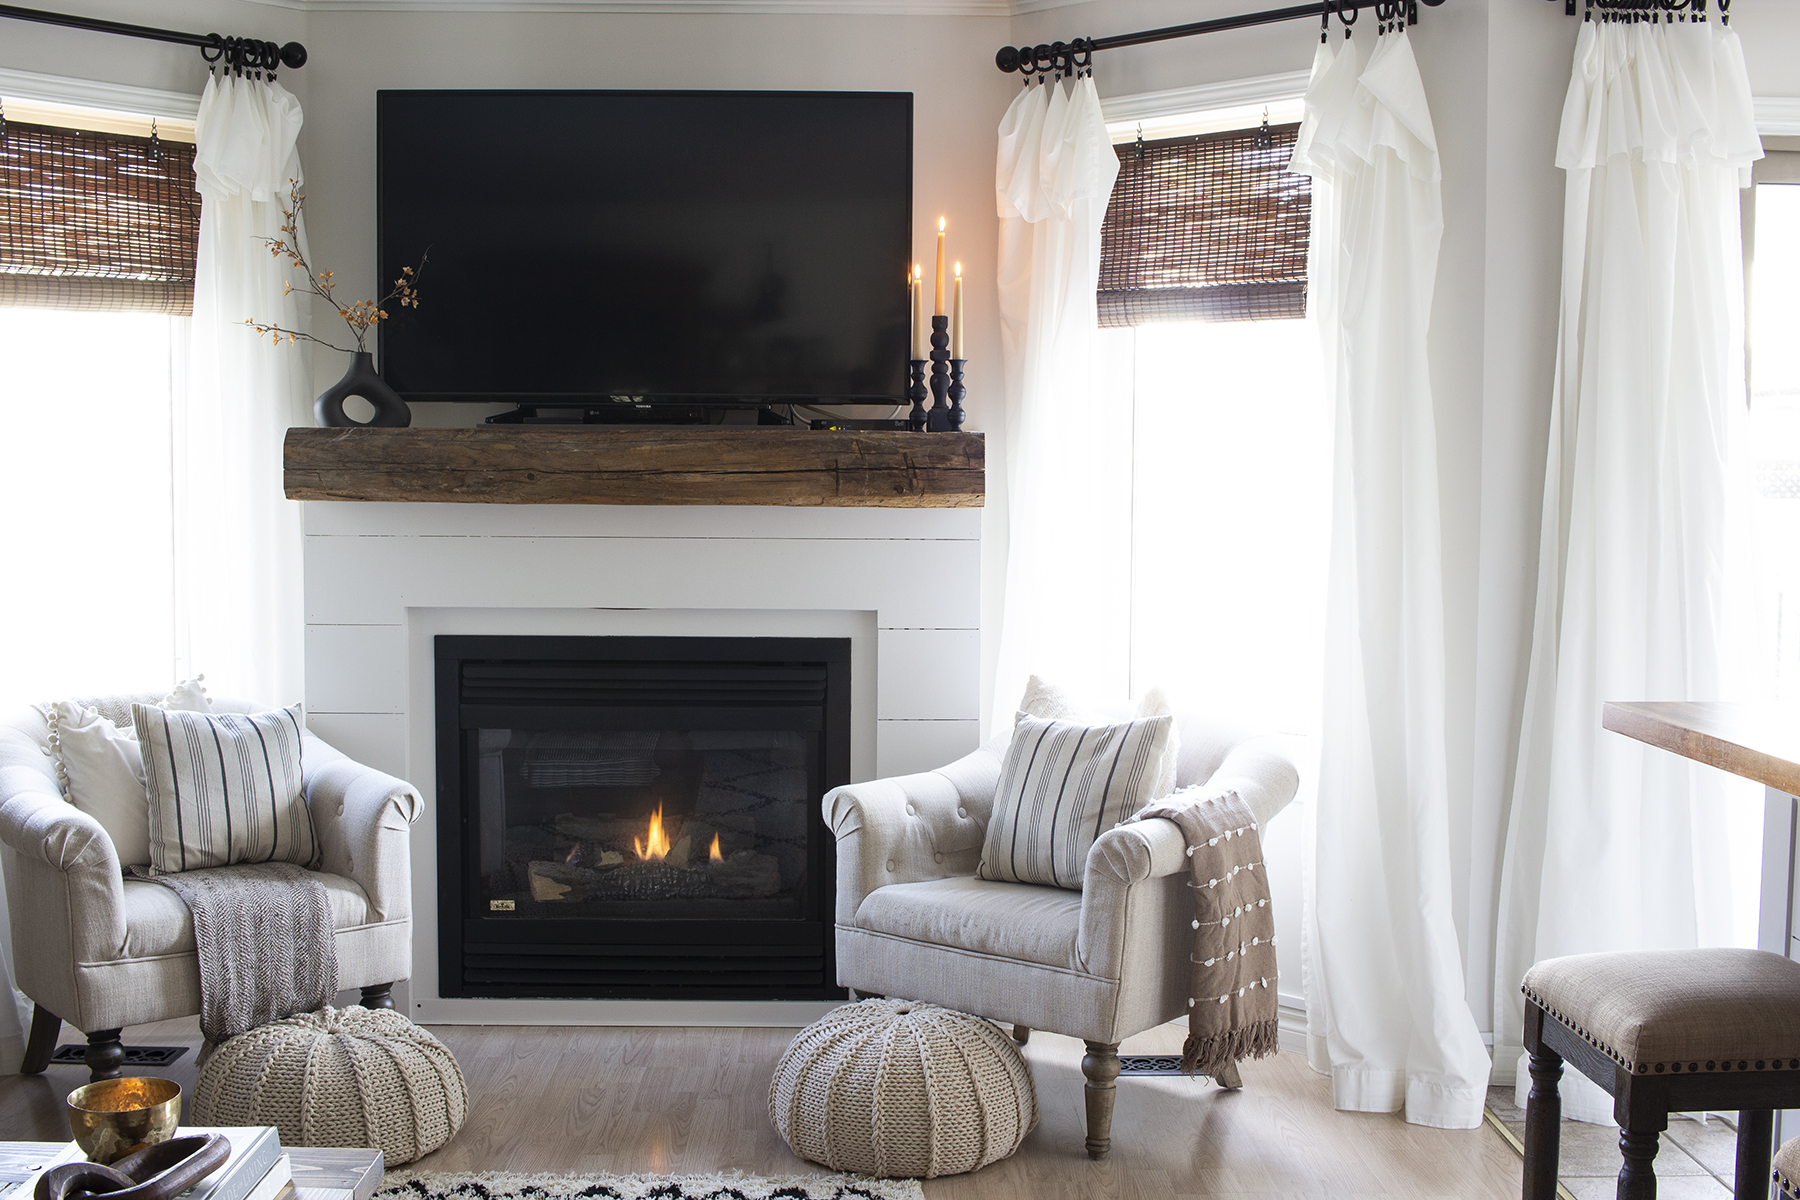 white shiplap and barn beam fireplace tve above two windows